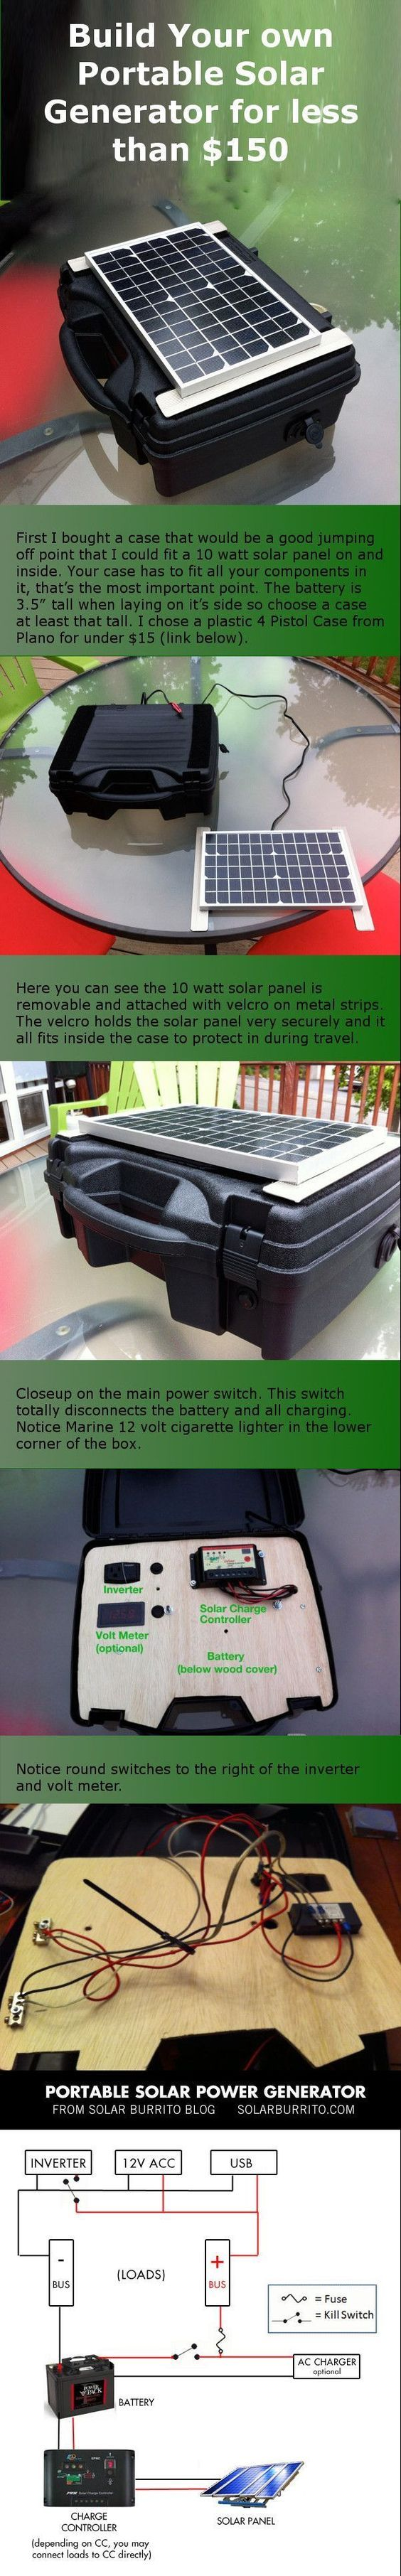 How To Build Your Own Solar Power Generator For Under $150 Pictures, Photos, and Images for Facebook, Tumblr, Pinterest, and Twitter(Tech Tumblr Technology)